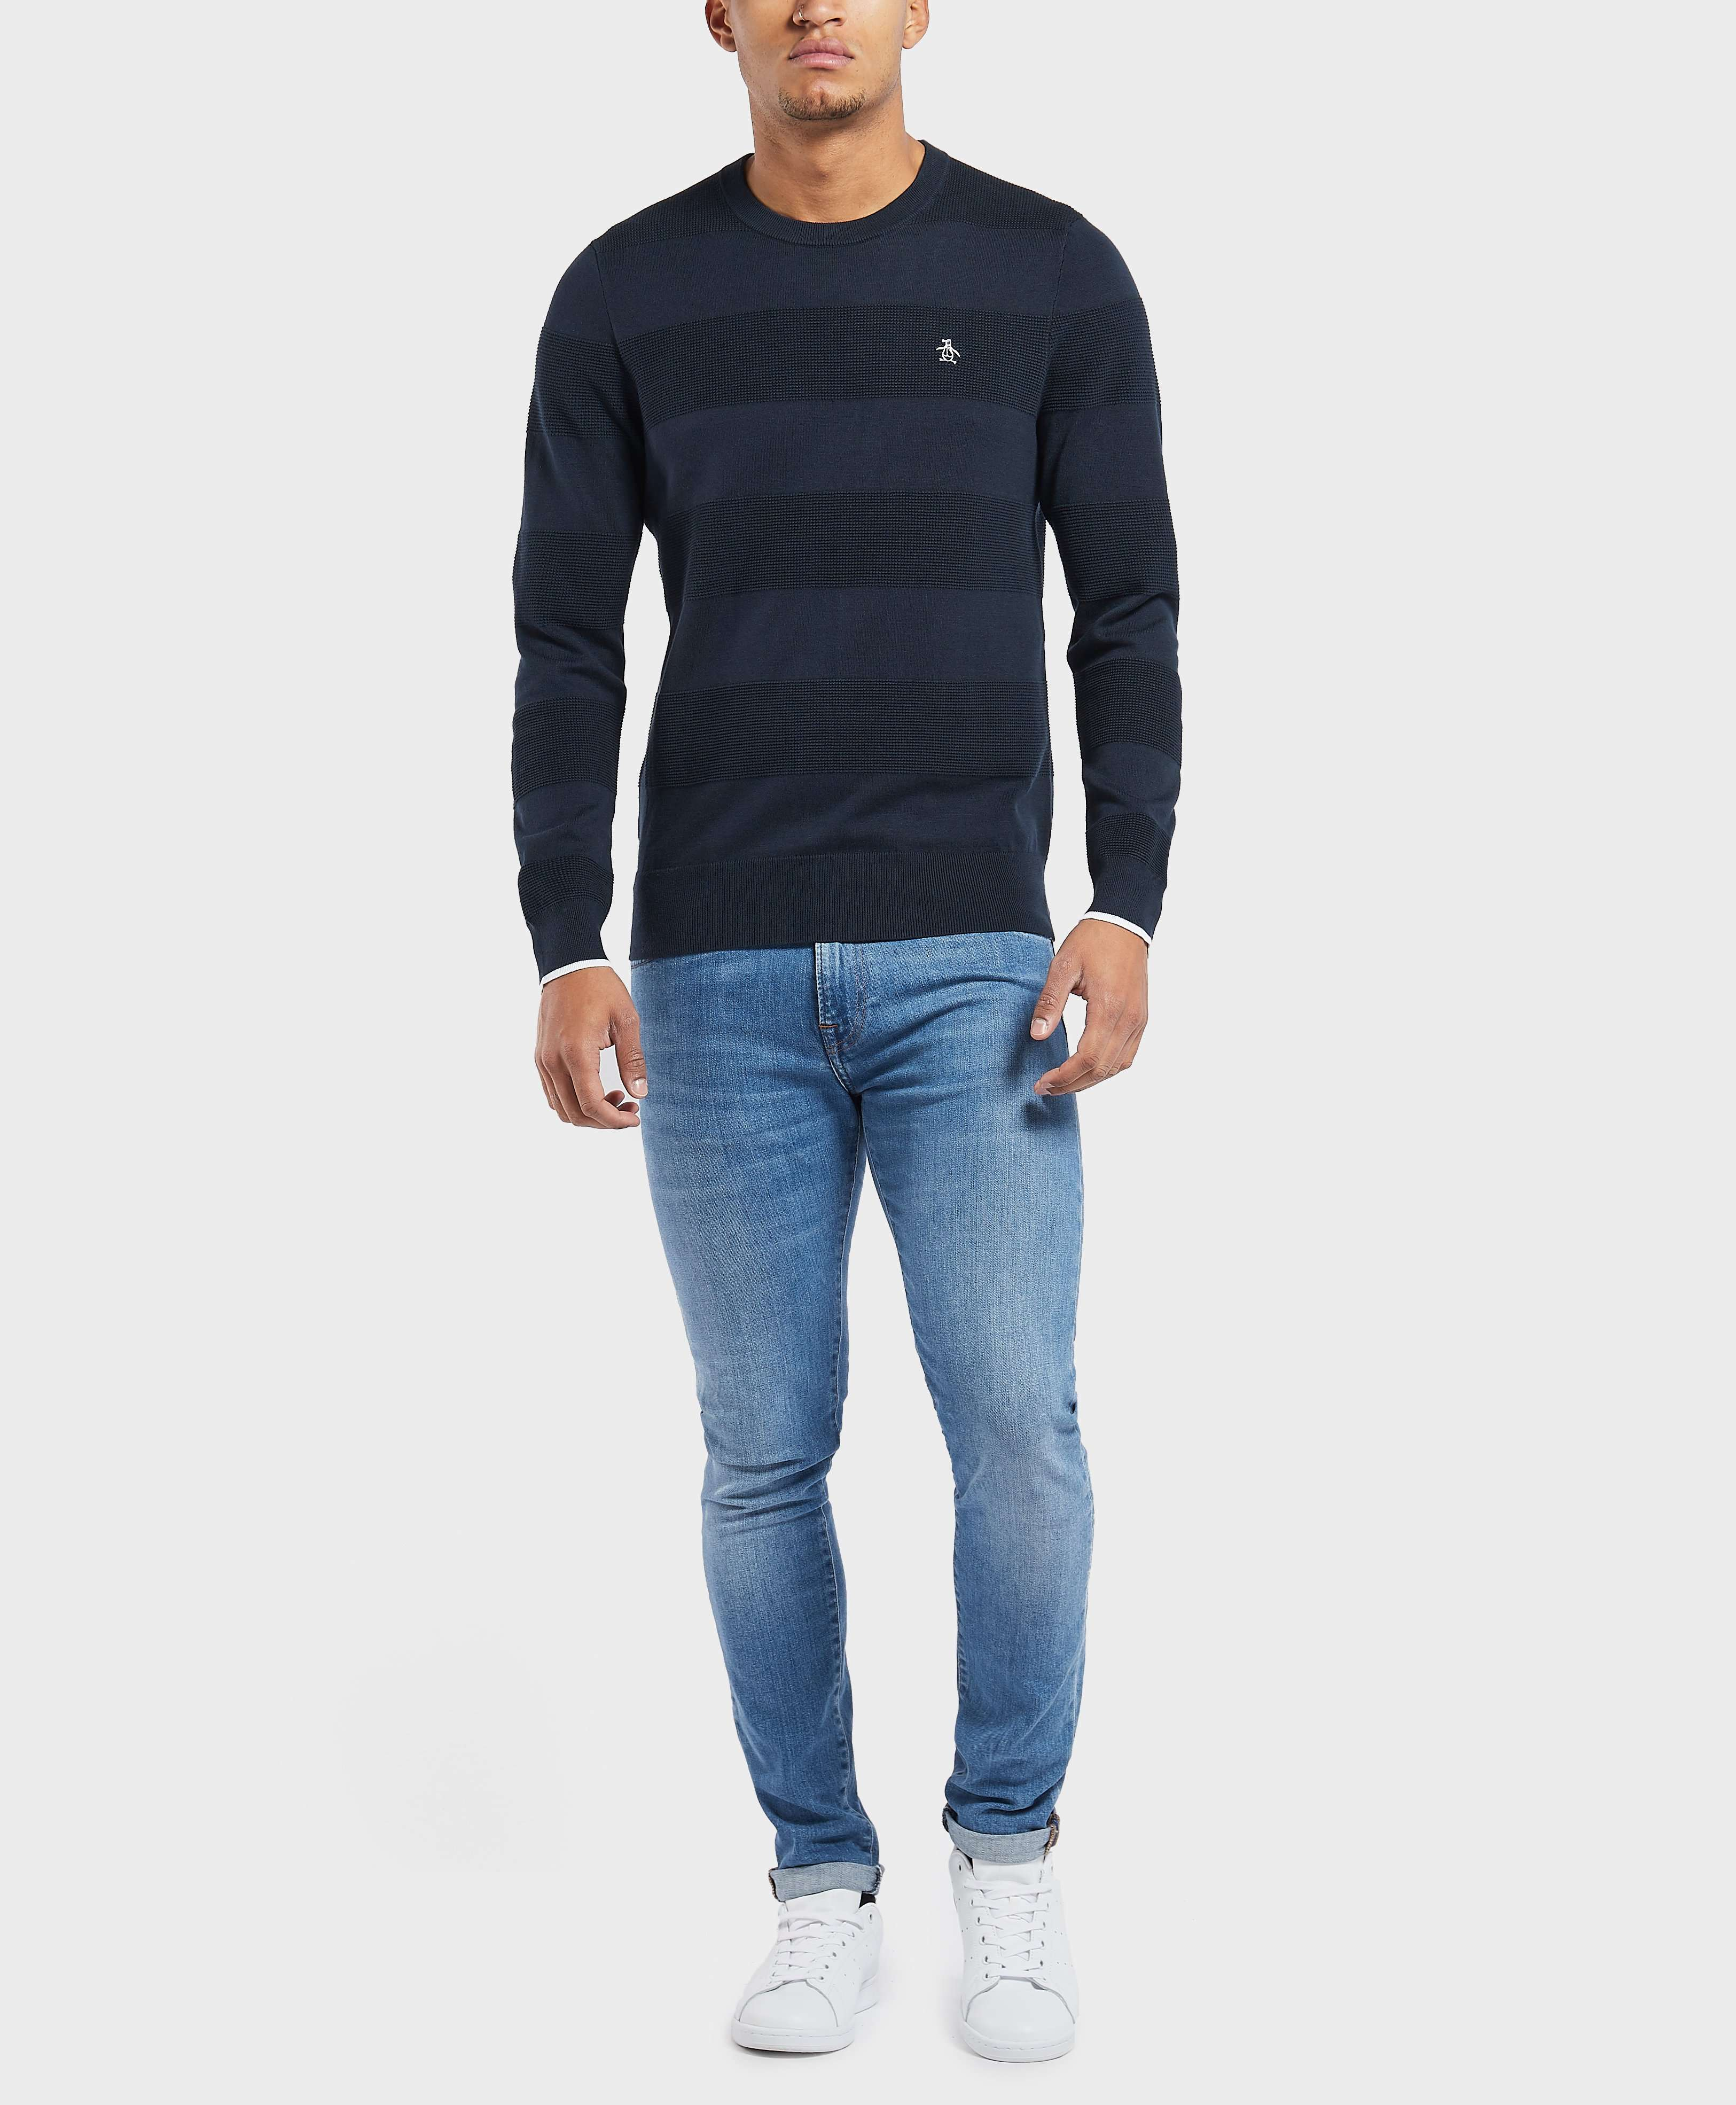 Original Penguin Band Crew Knitted Jumper